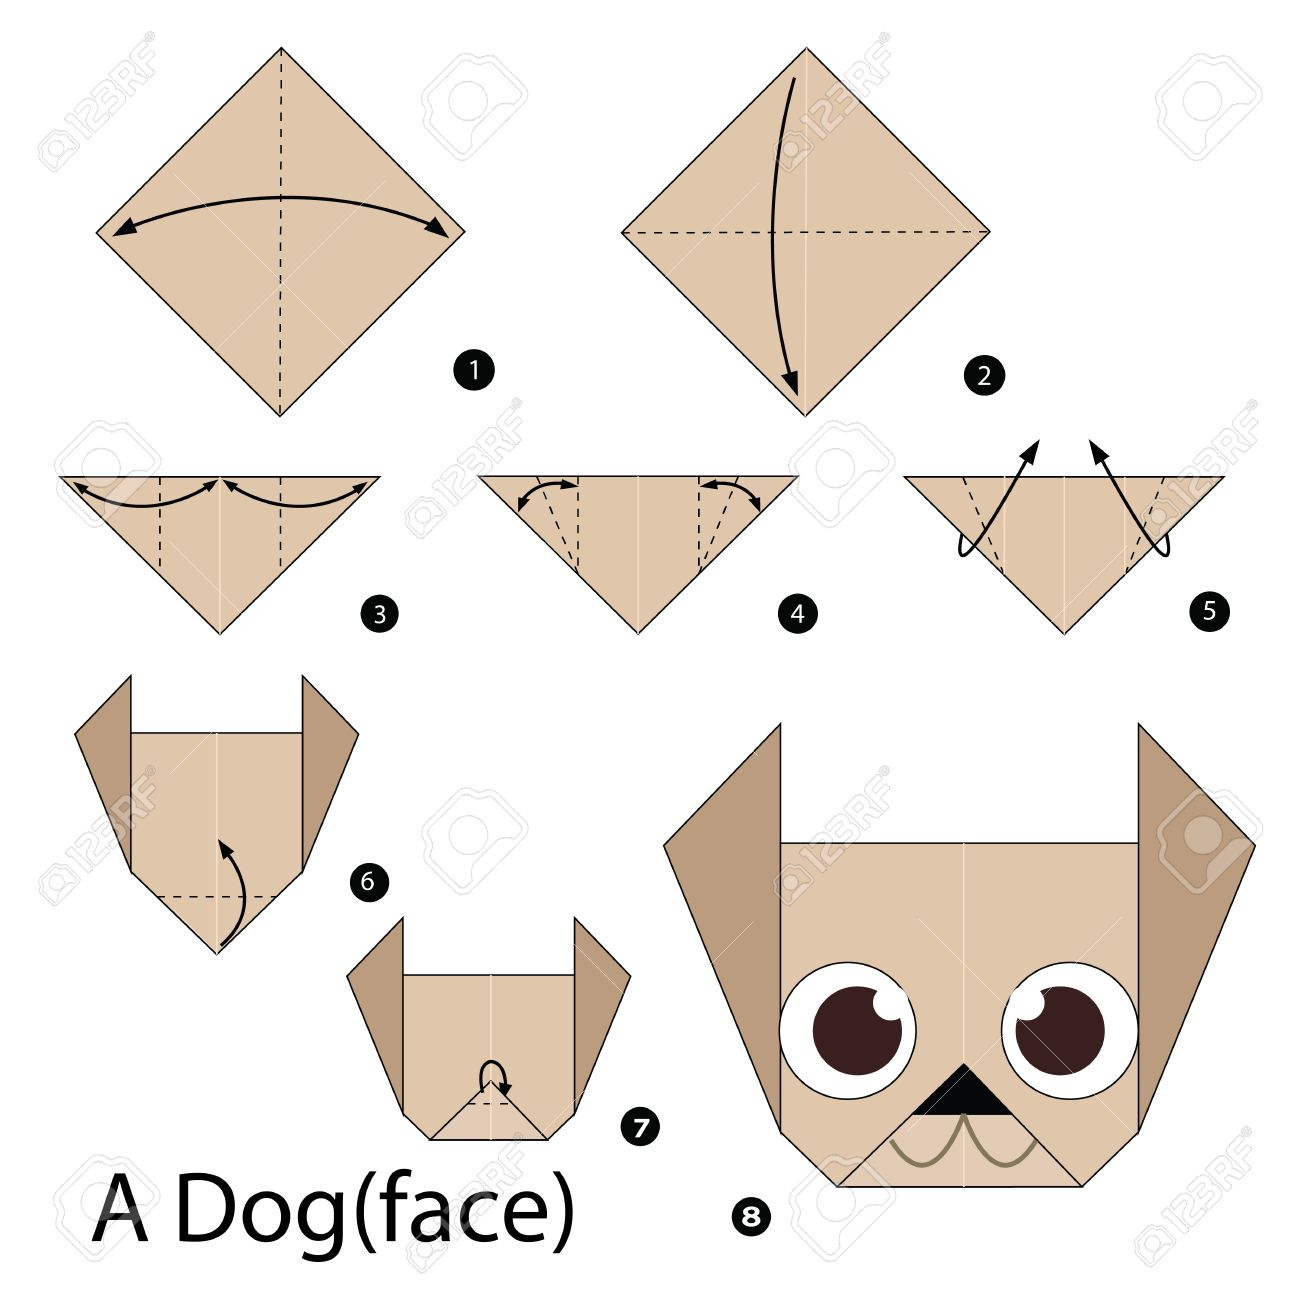 Easy Origami Dog - Tutorial - How to make an easy origami Dog ... | 1300x1300